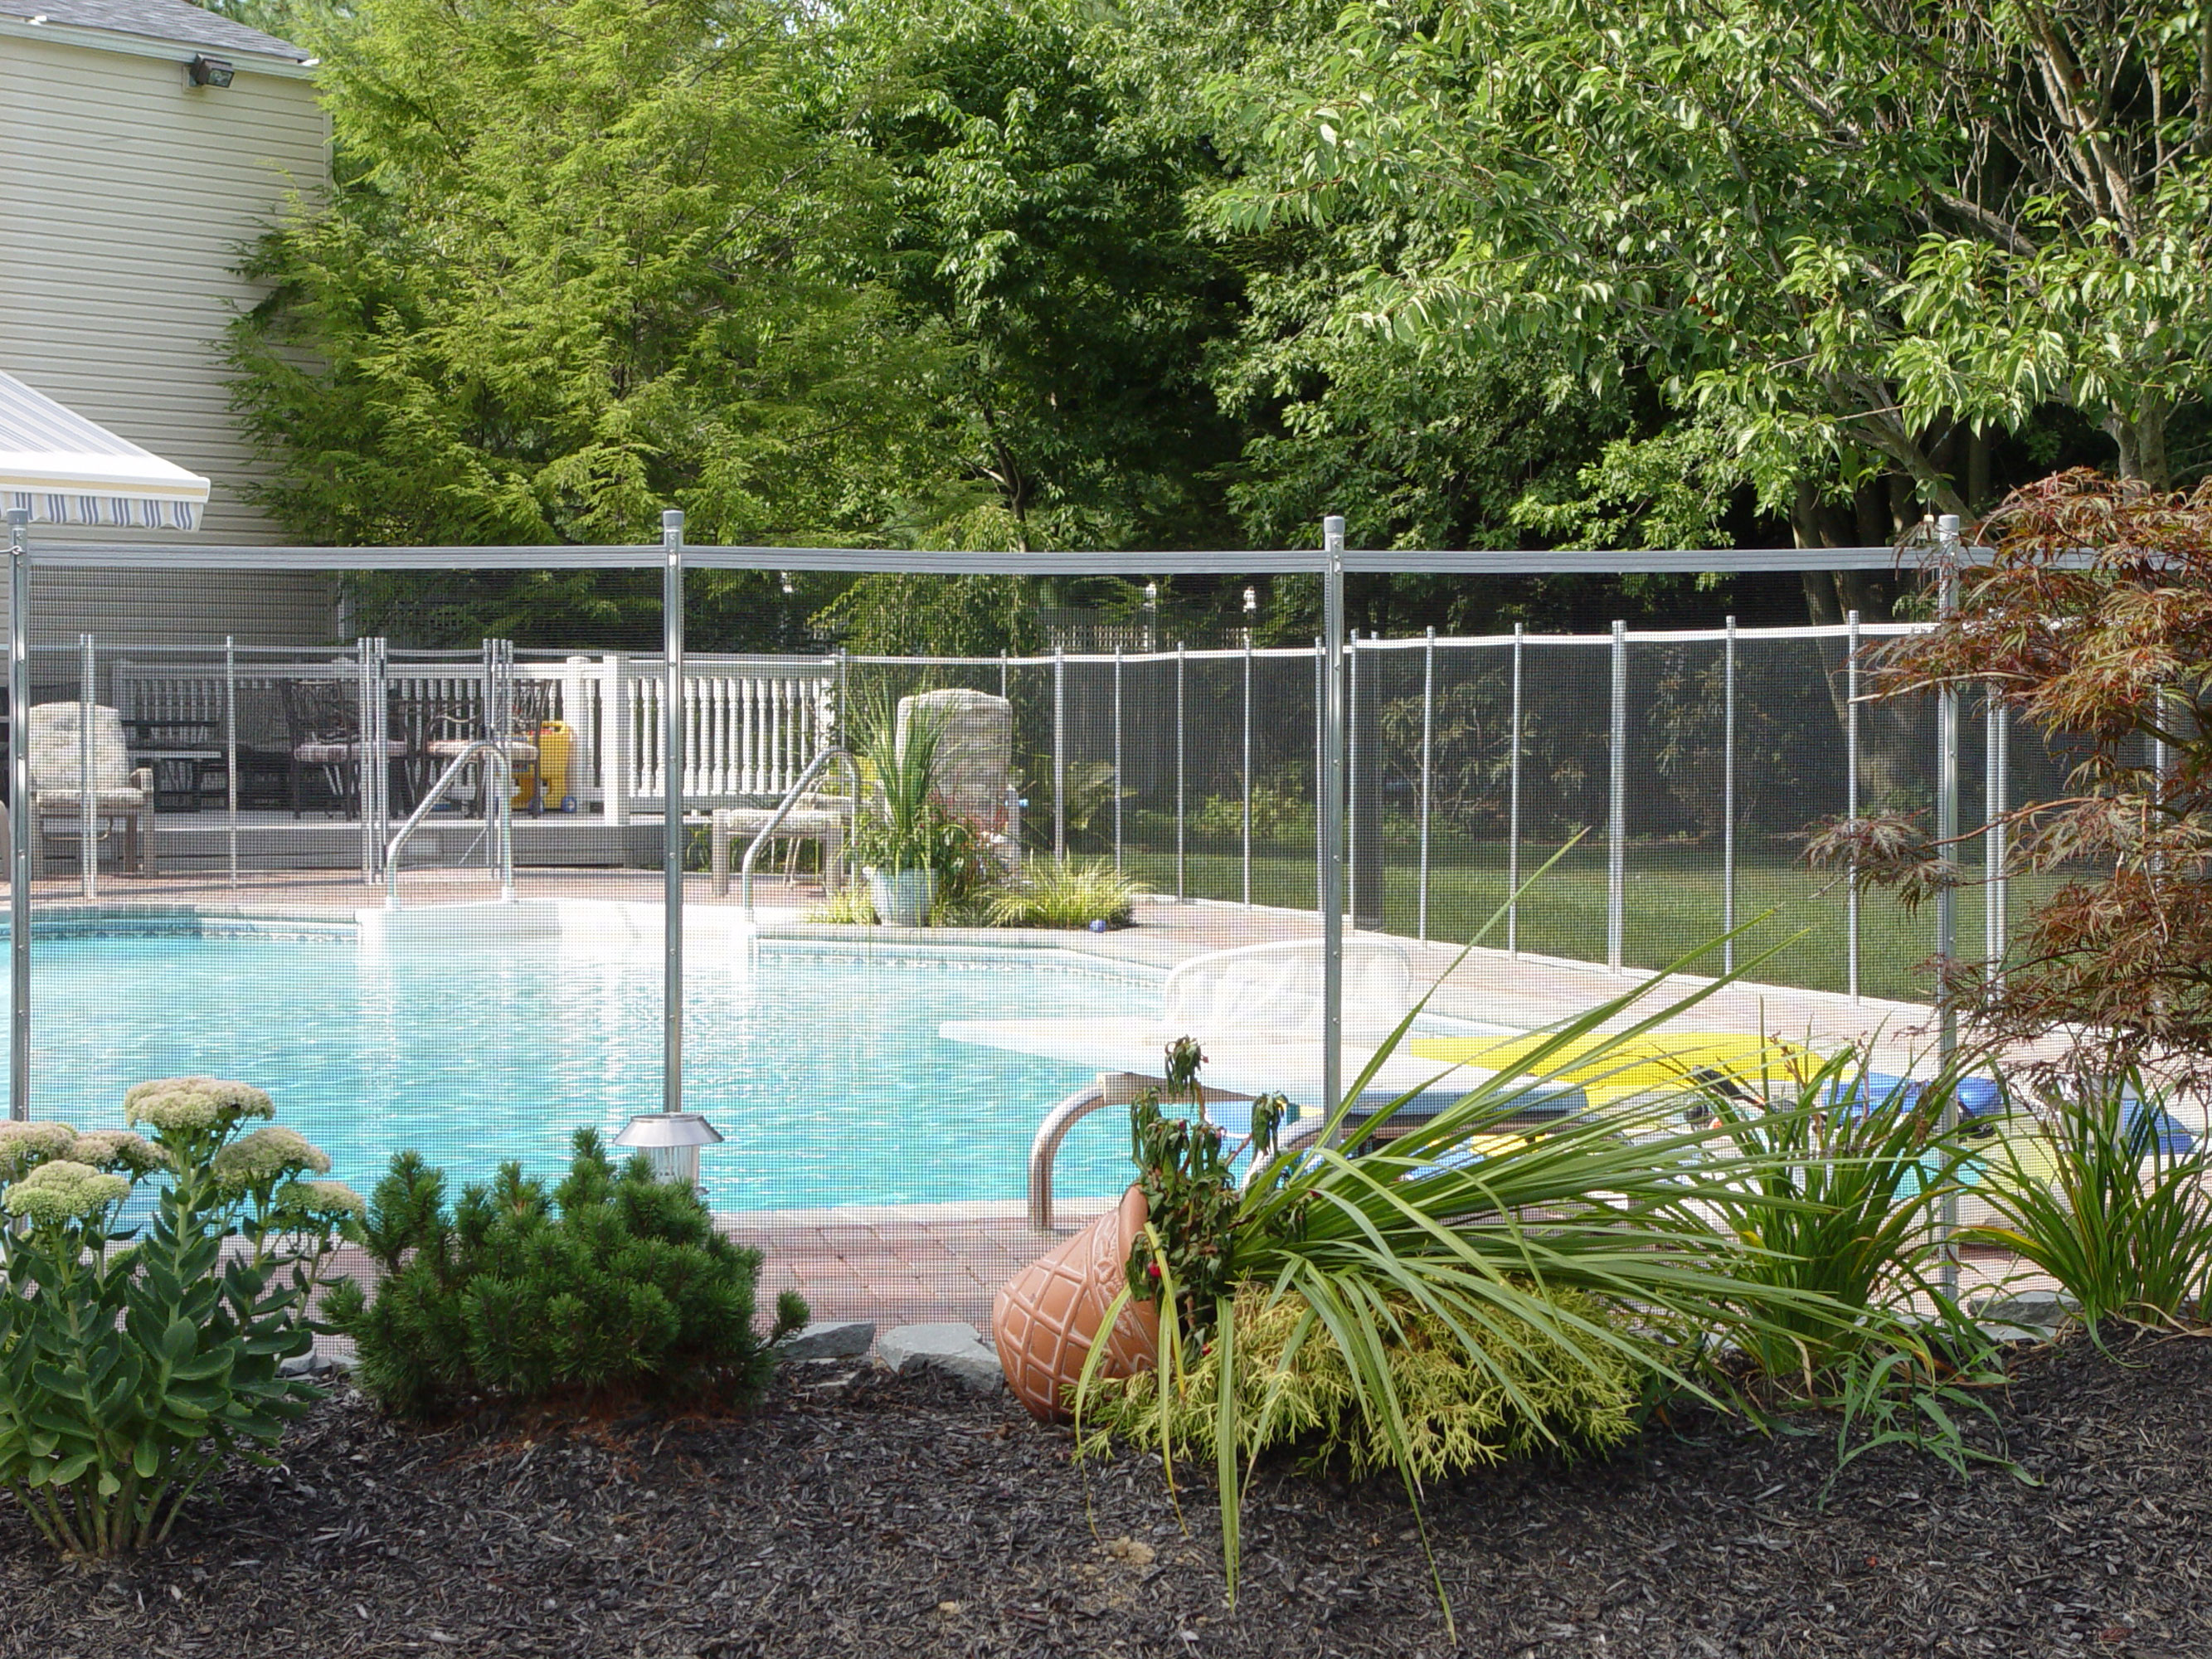 Best pond fencing ideas dma homes